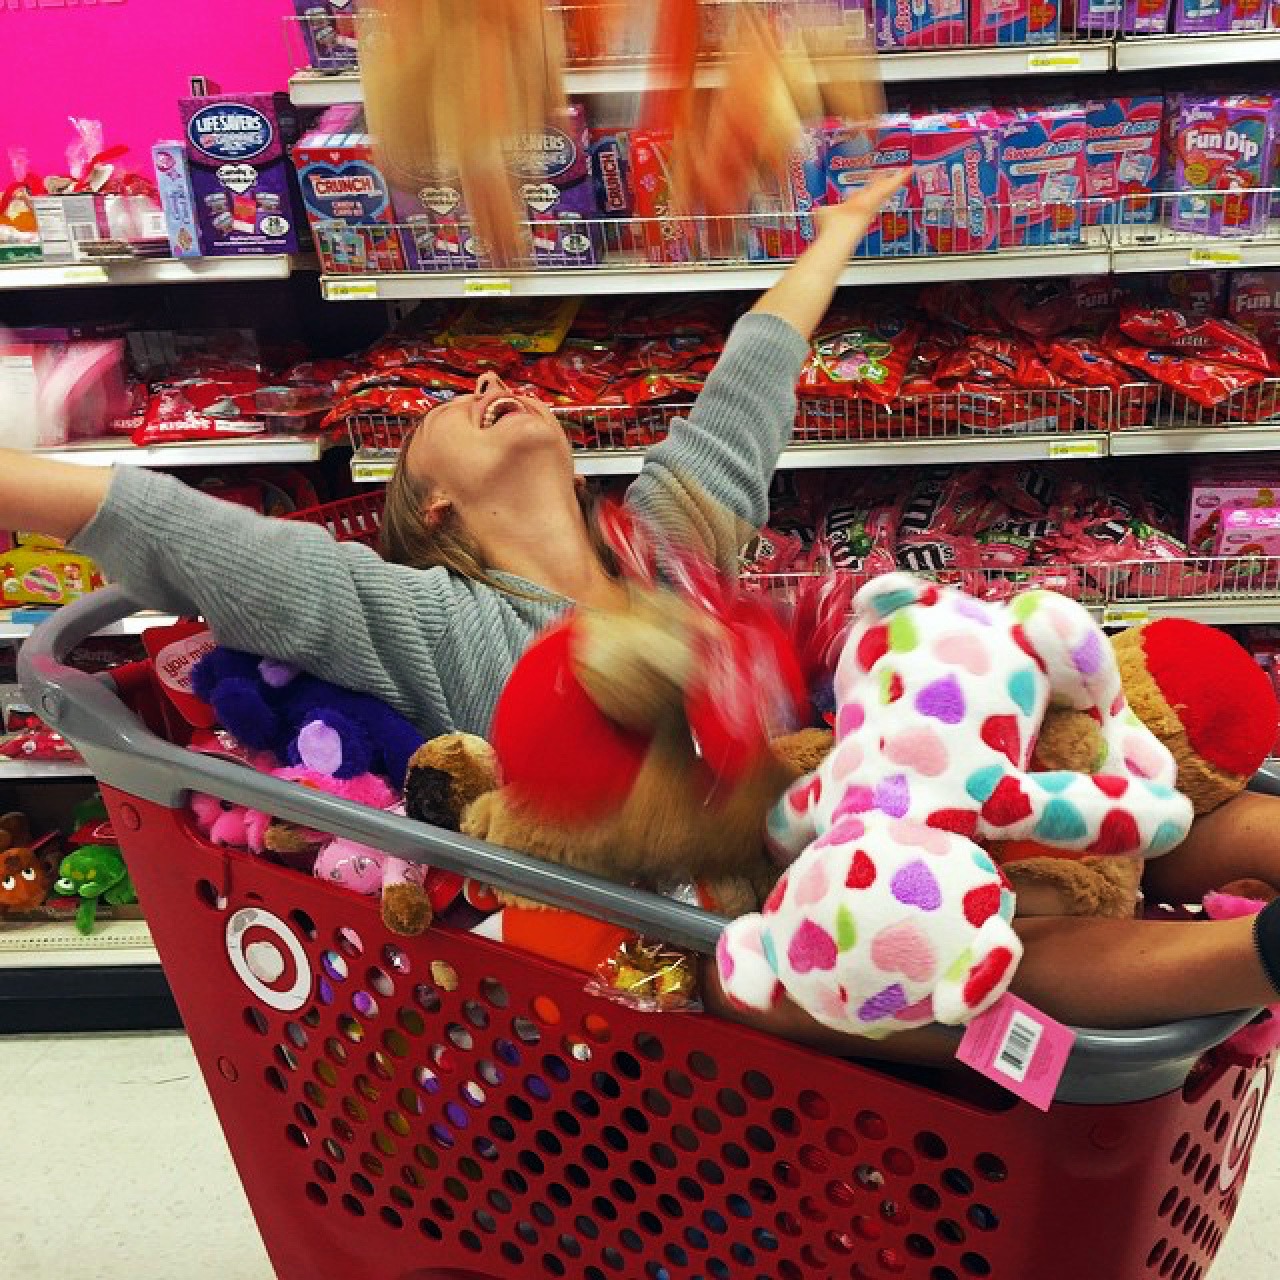 Marina Barnes in a red Target shopping cart and covered with plush animals, some of which she is tossing joyously into the air with her arms outstretched in celebration and her feet sticking out the end of the cart